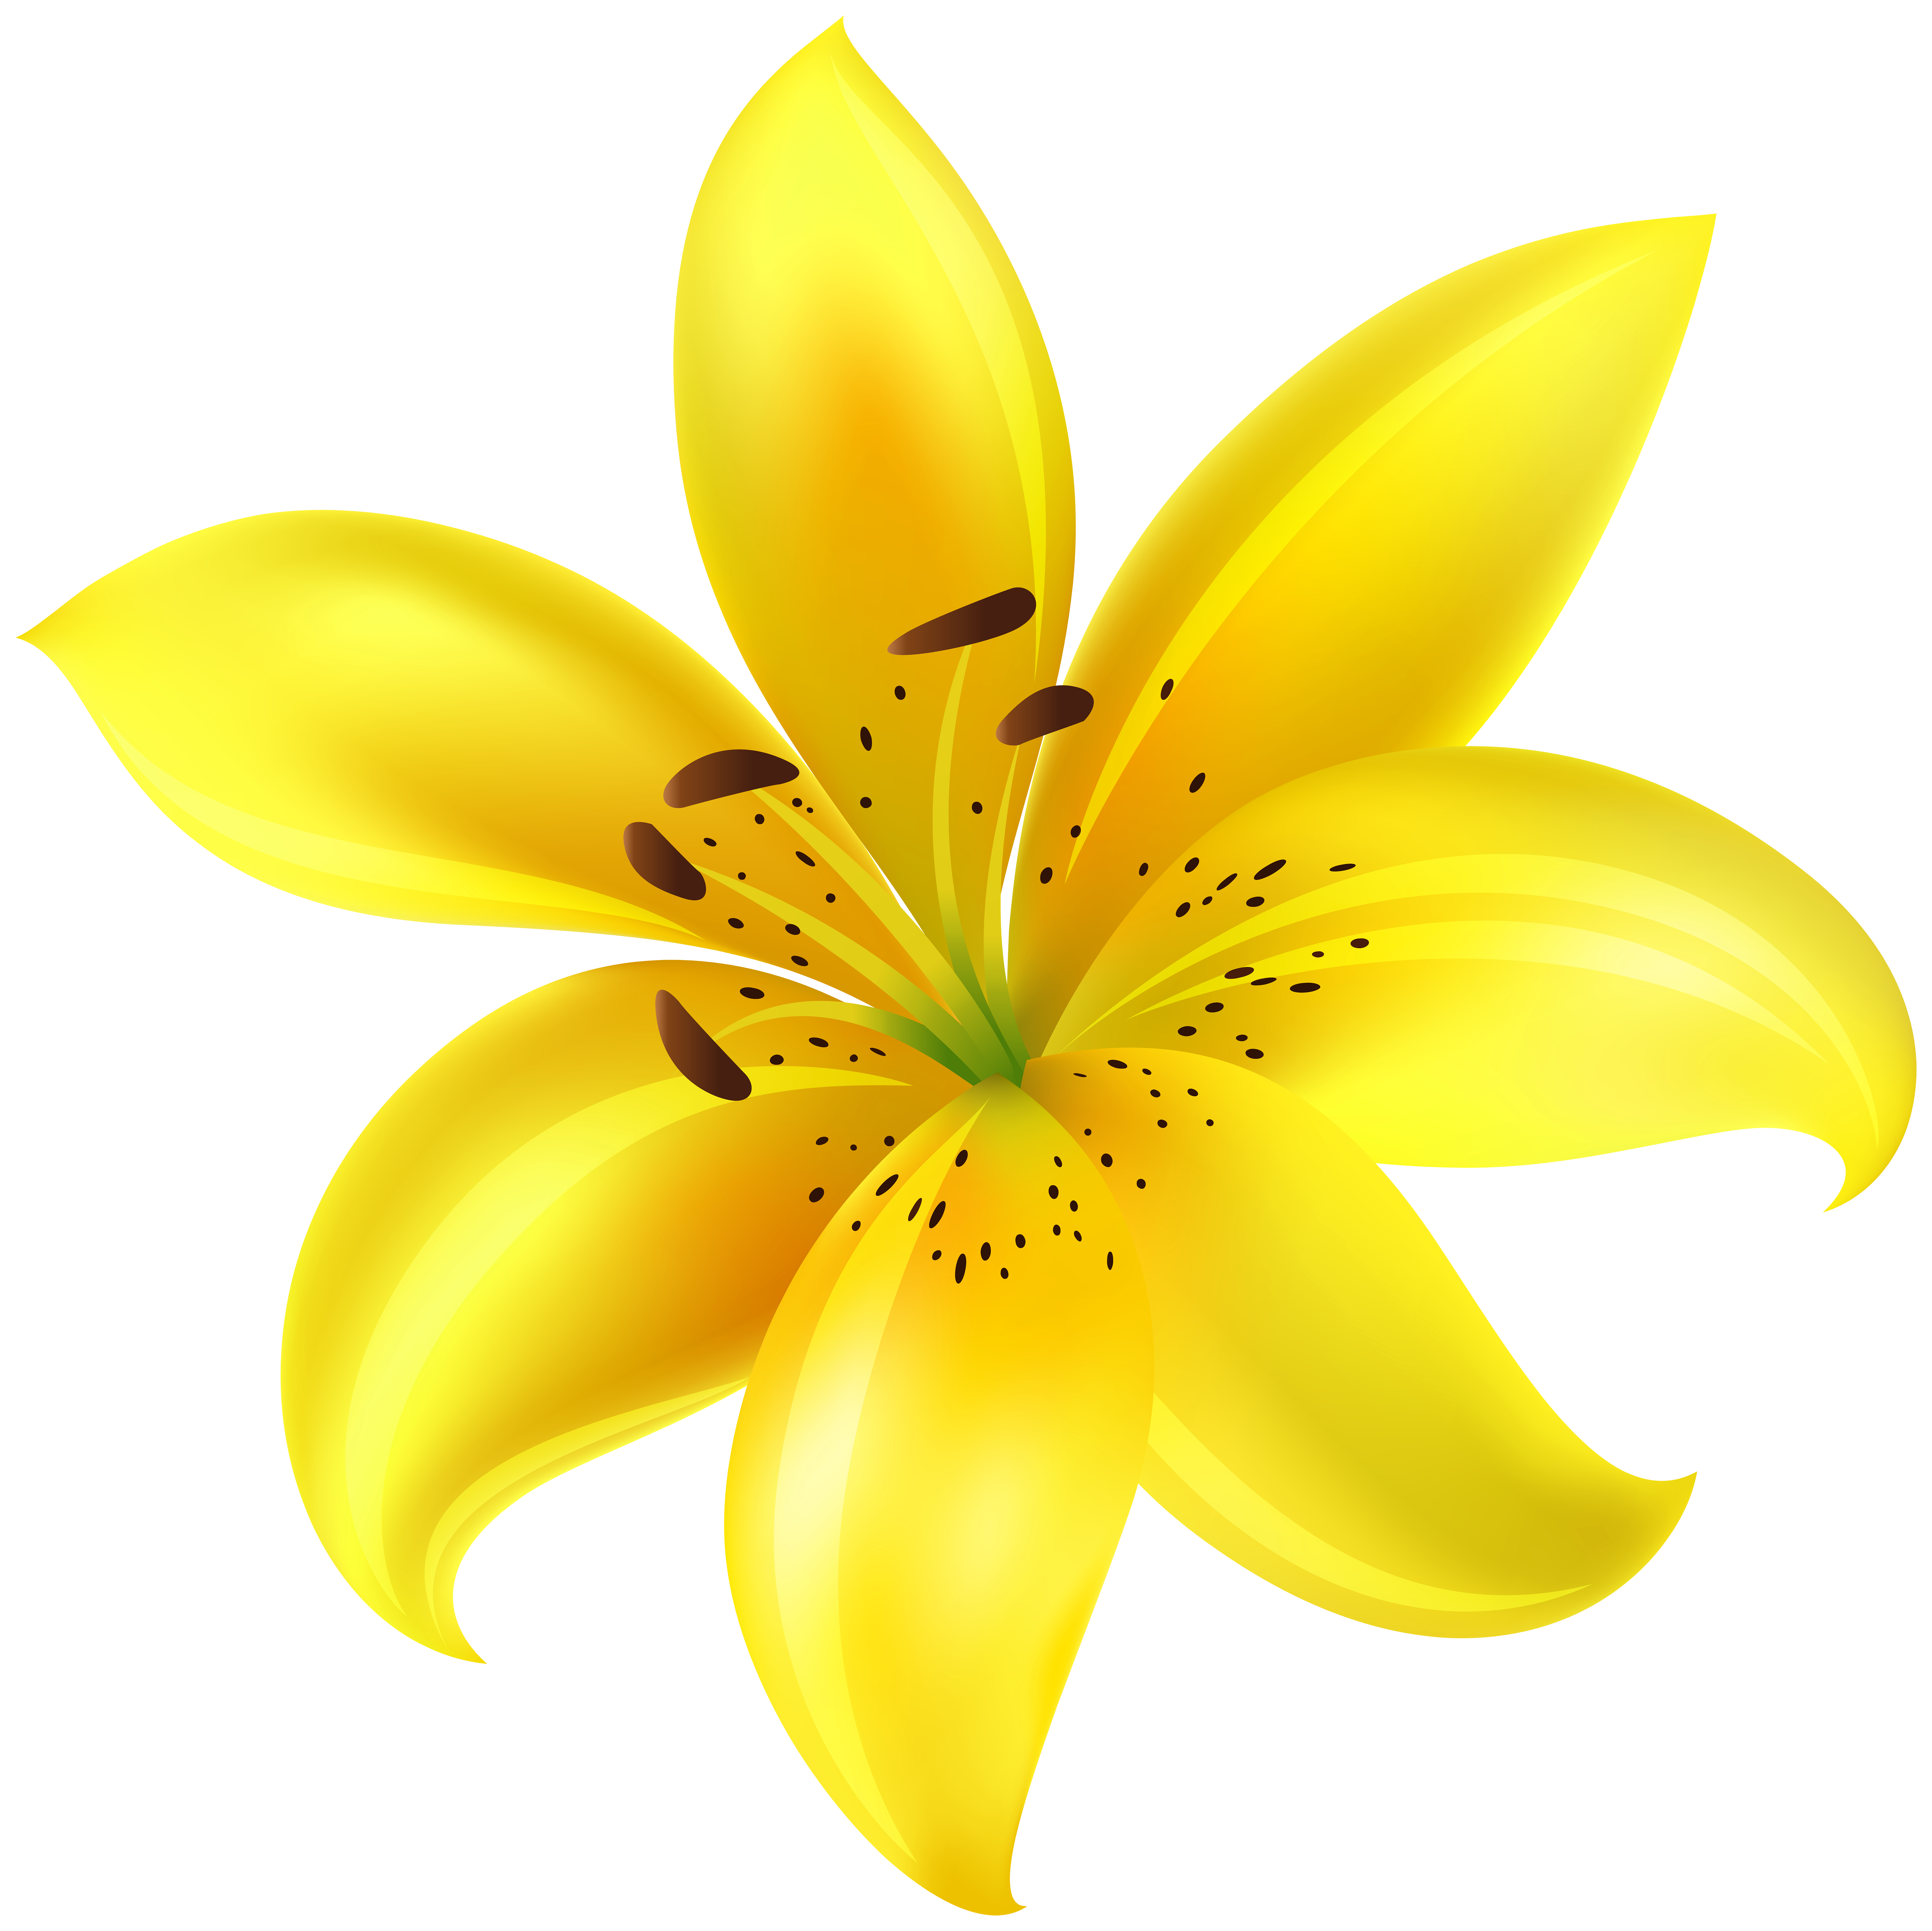 Flower clipart yellow banner library Yellow Flower Clip Art Image | Gallery Yopriceville - High-Quality ... banner library